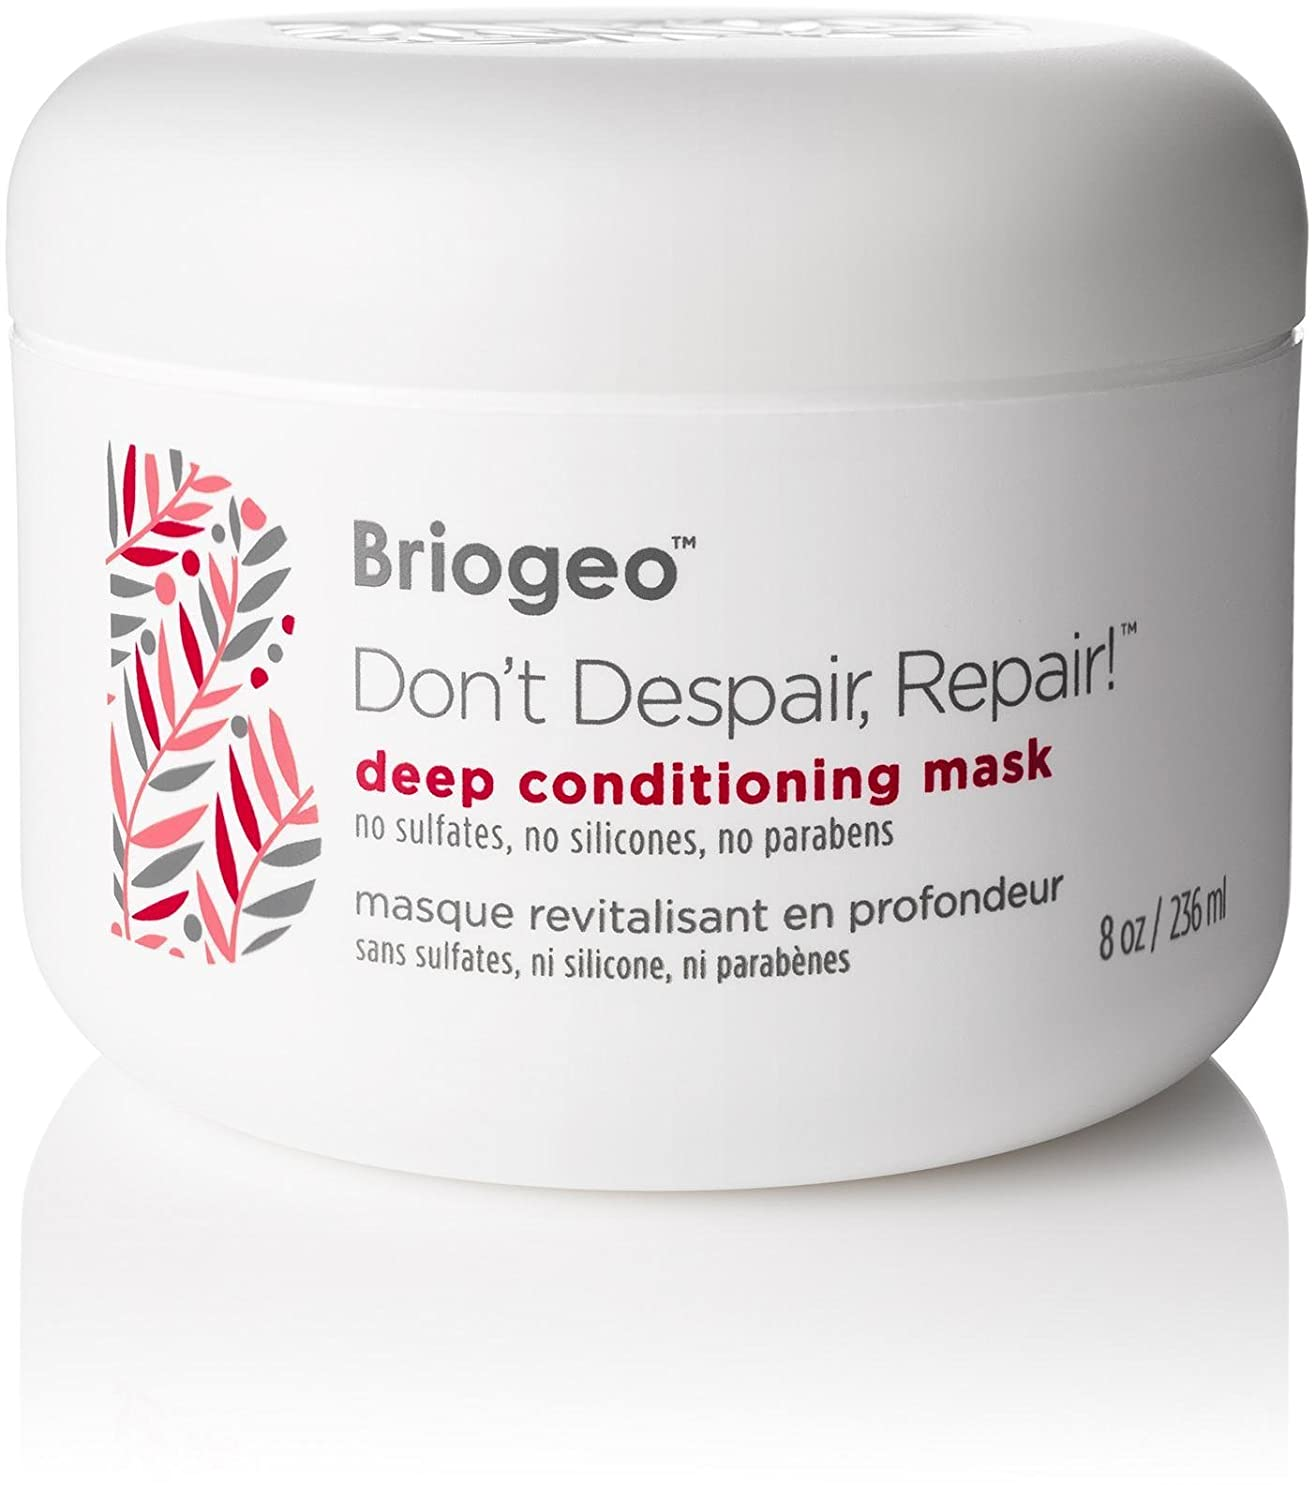 Briogeo Don't Despair, Repair Deep Conditioning Mask - 8 oz